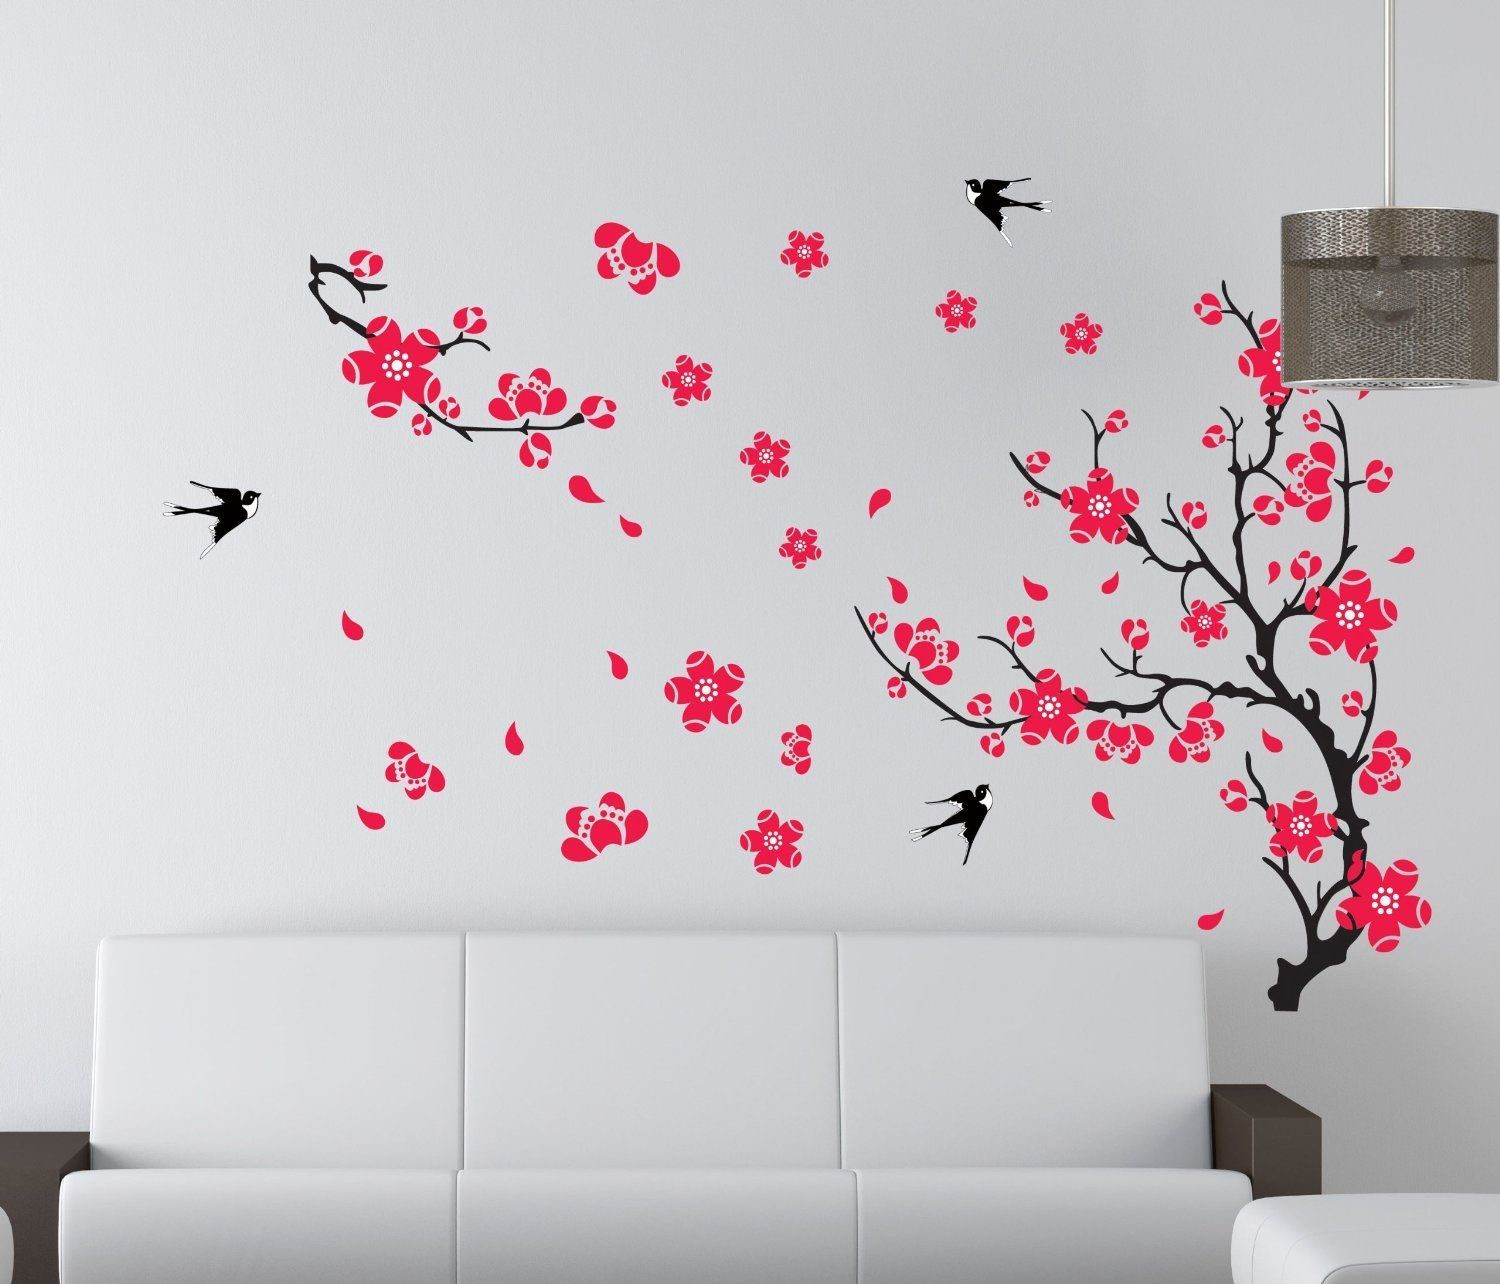 Plum Blossom Flower Removable Wall Sticker Decor Decal